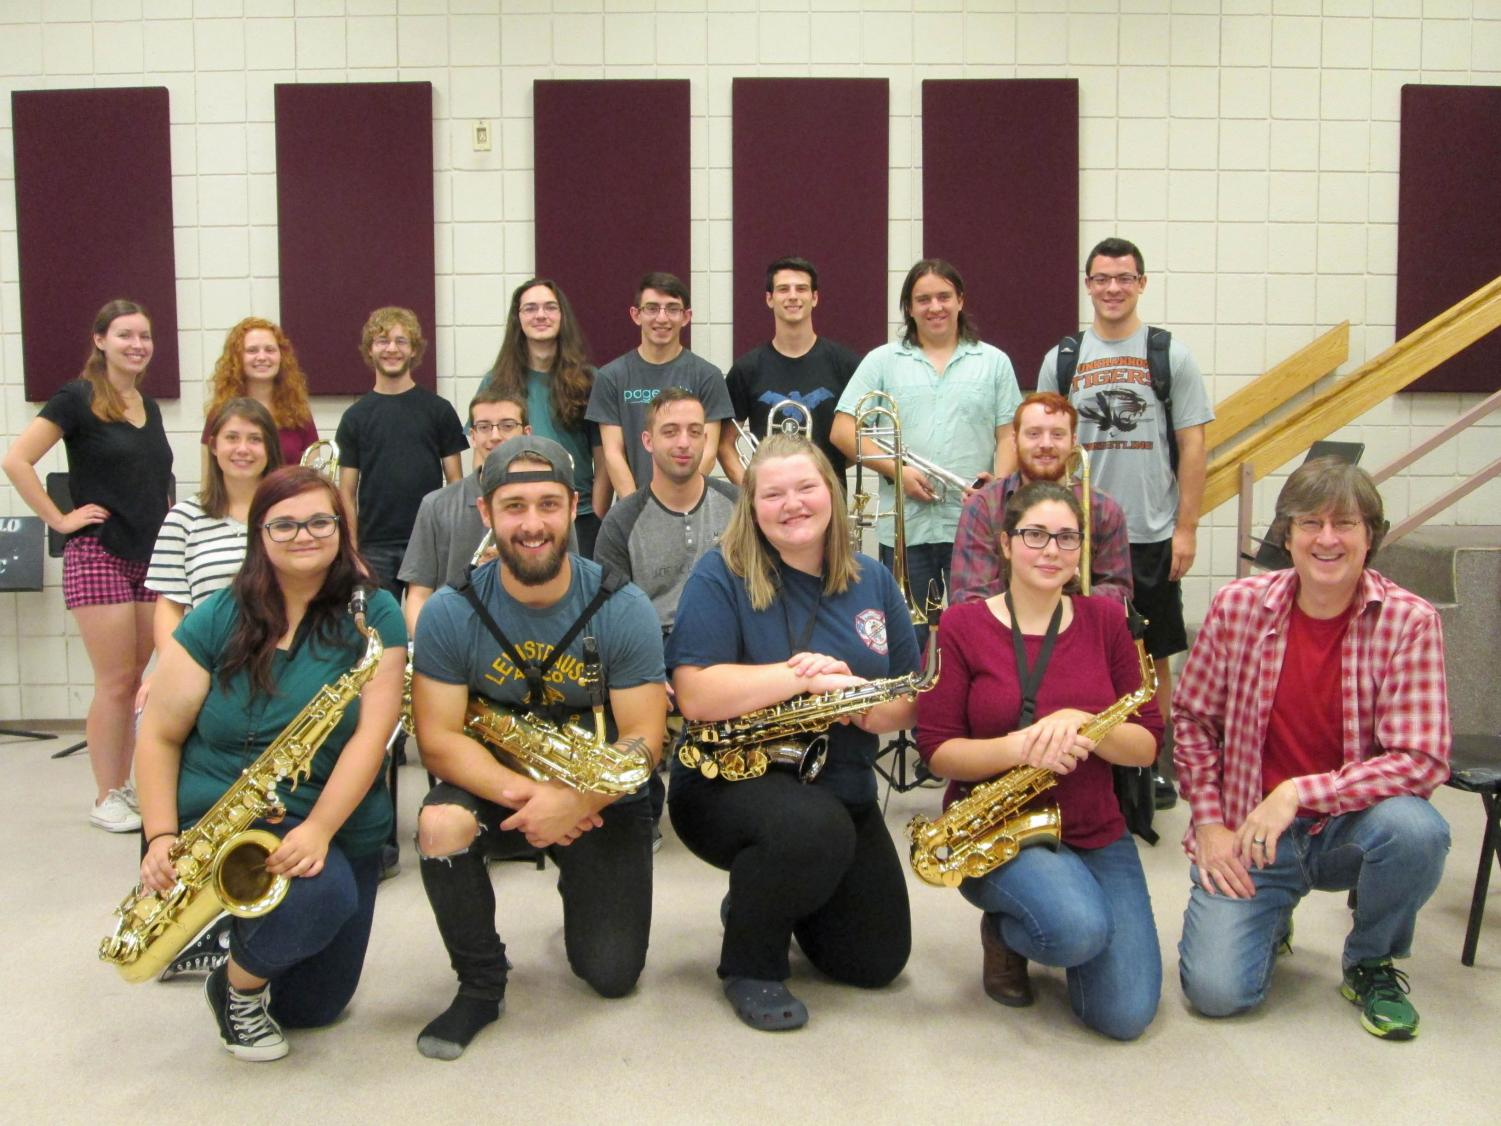 The Mercyhurst Jazz Ensemble will perform holiday favorites on Dec. 2 at 8 p.m. in Taylor Little Theatre.